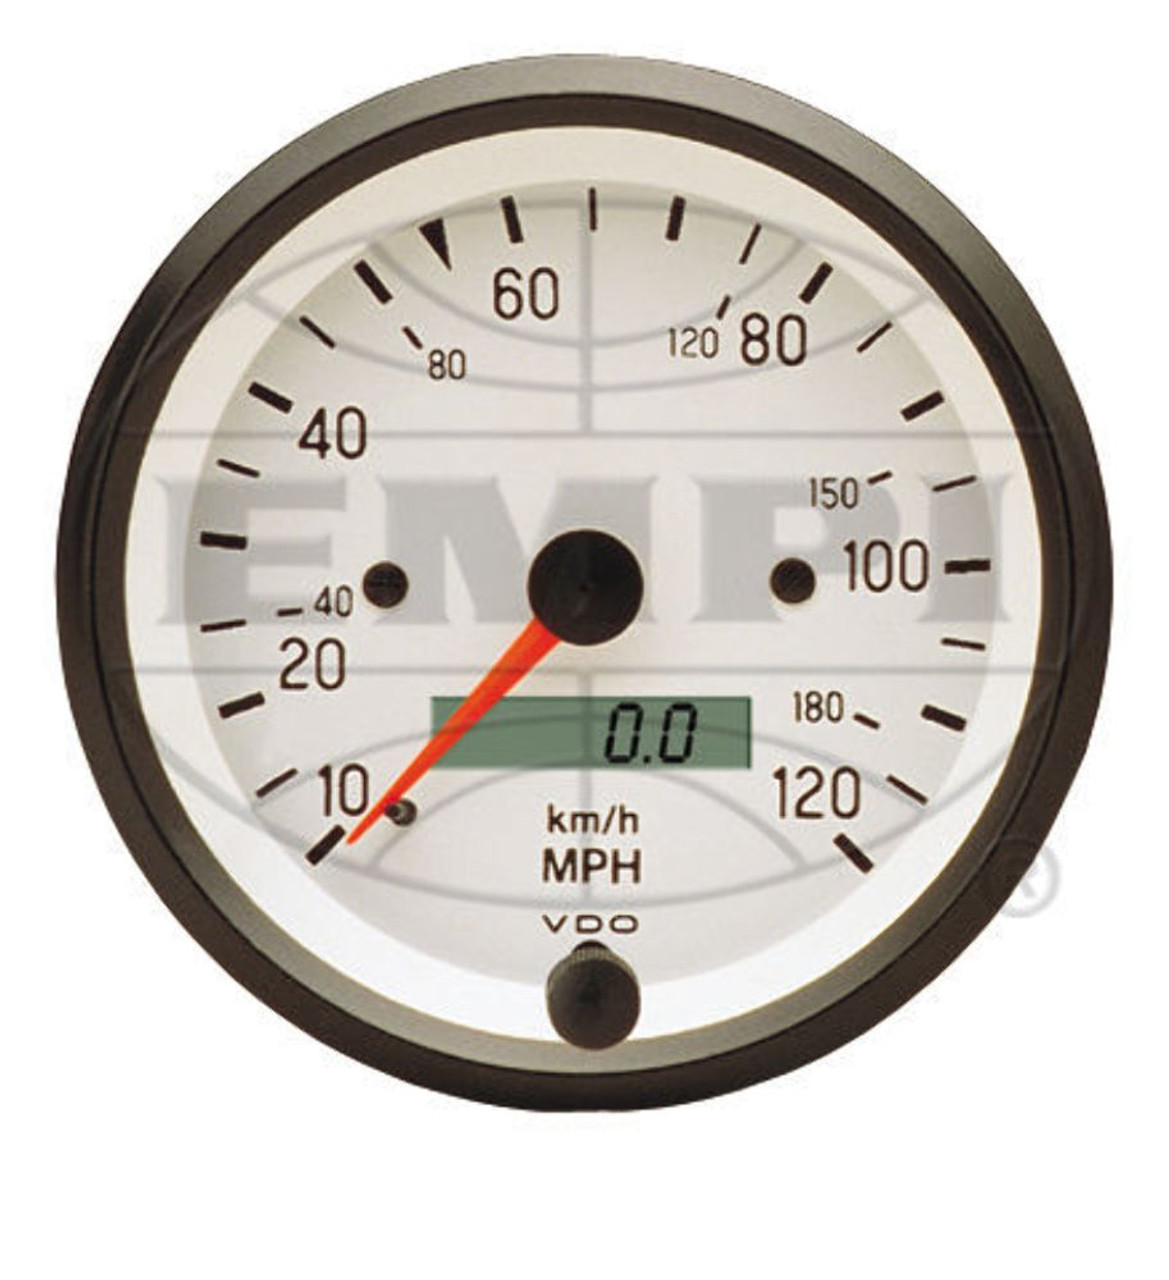 Cockpit Speedometer, White, 120 Mph, 3-1/8, Fits VW Bug Air Cooled, VDO 437201